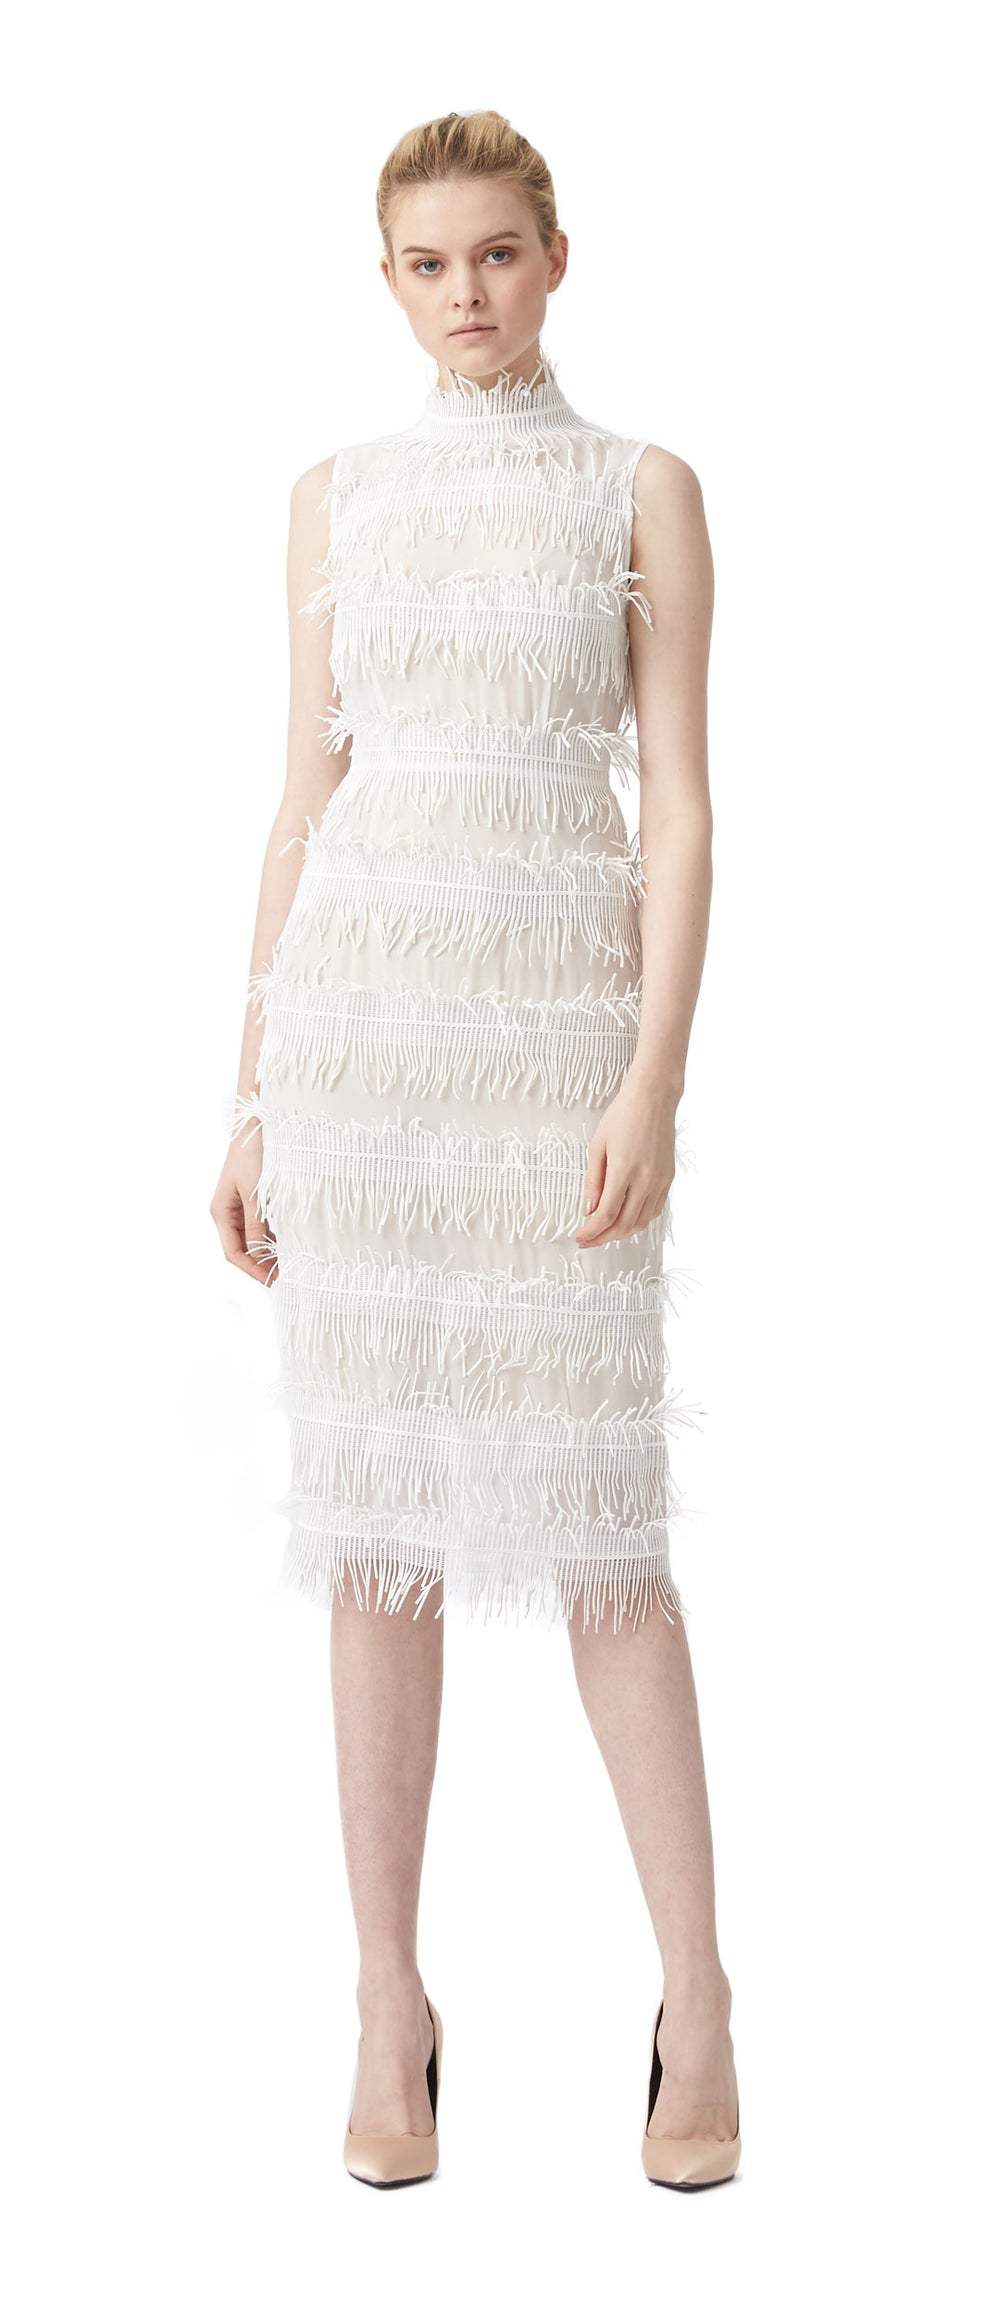 Rain Lace Trim High Neck Dress by Aijek at Maximillia.